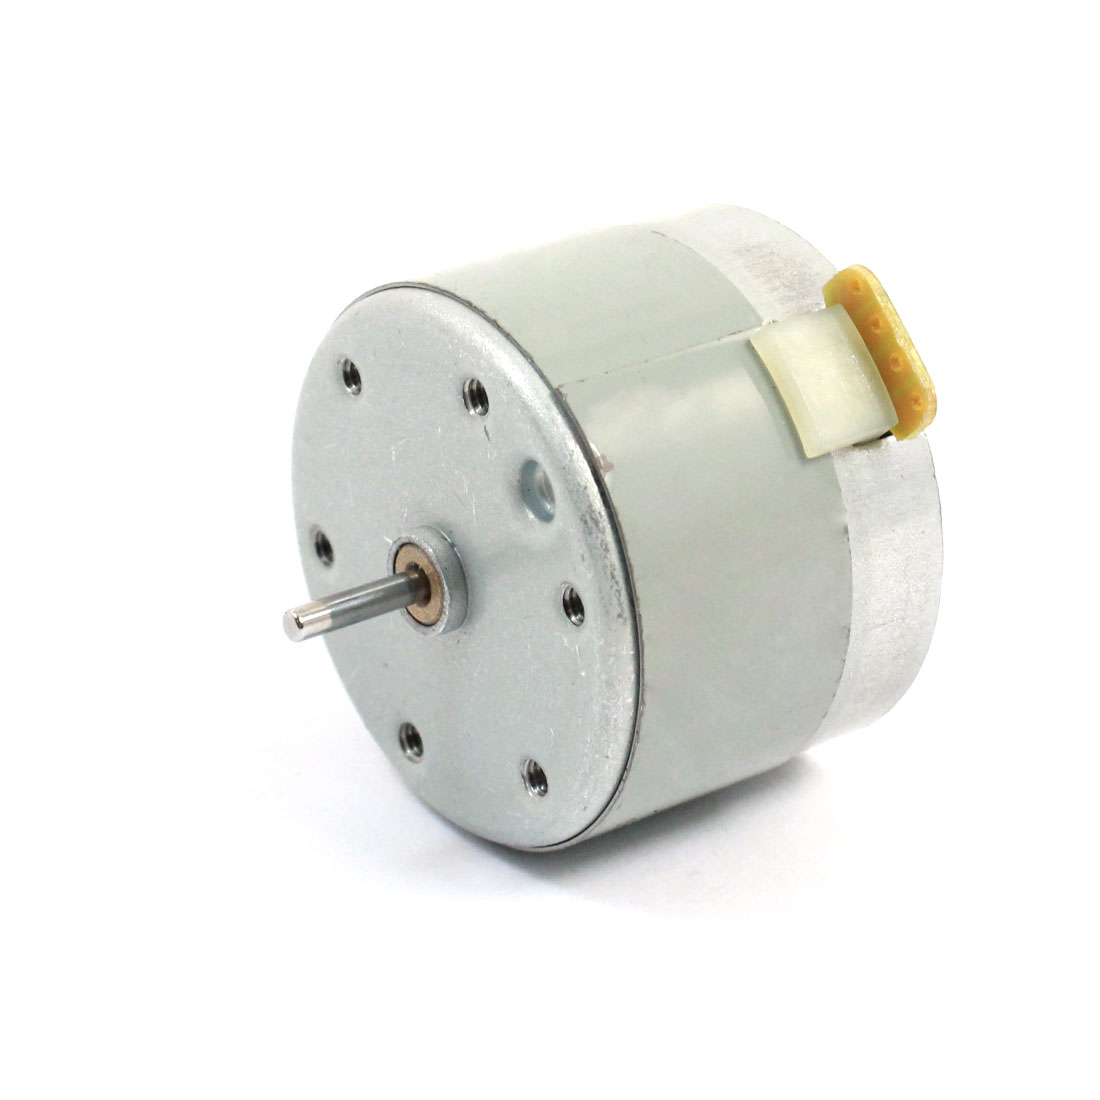 2400 RPM 12V High Torque Cylinder Shaped Electric Mini DC Motor